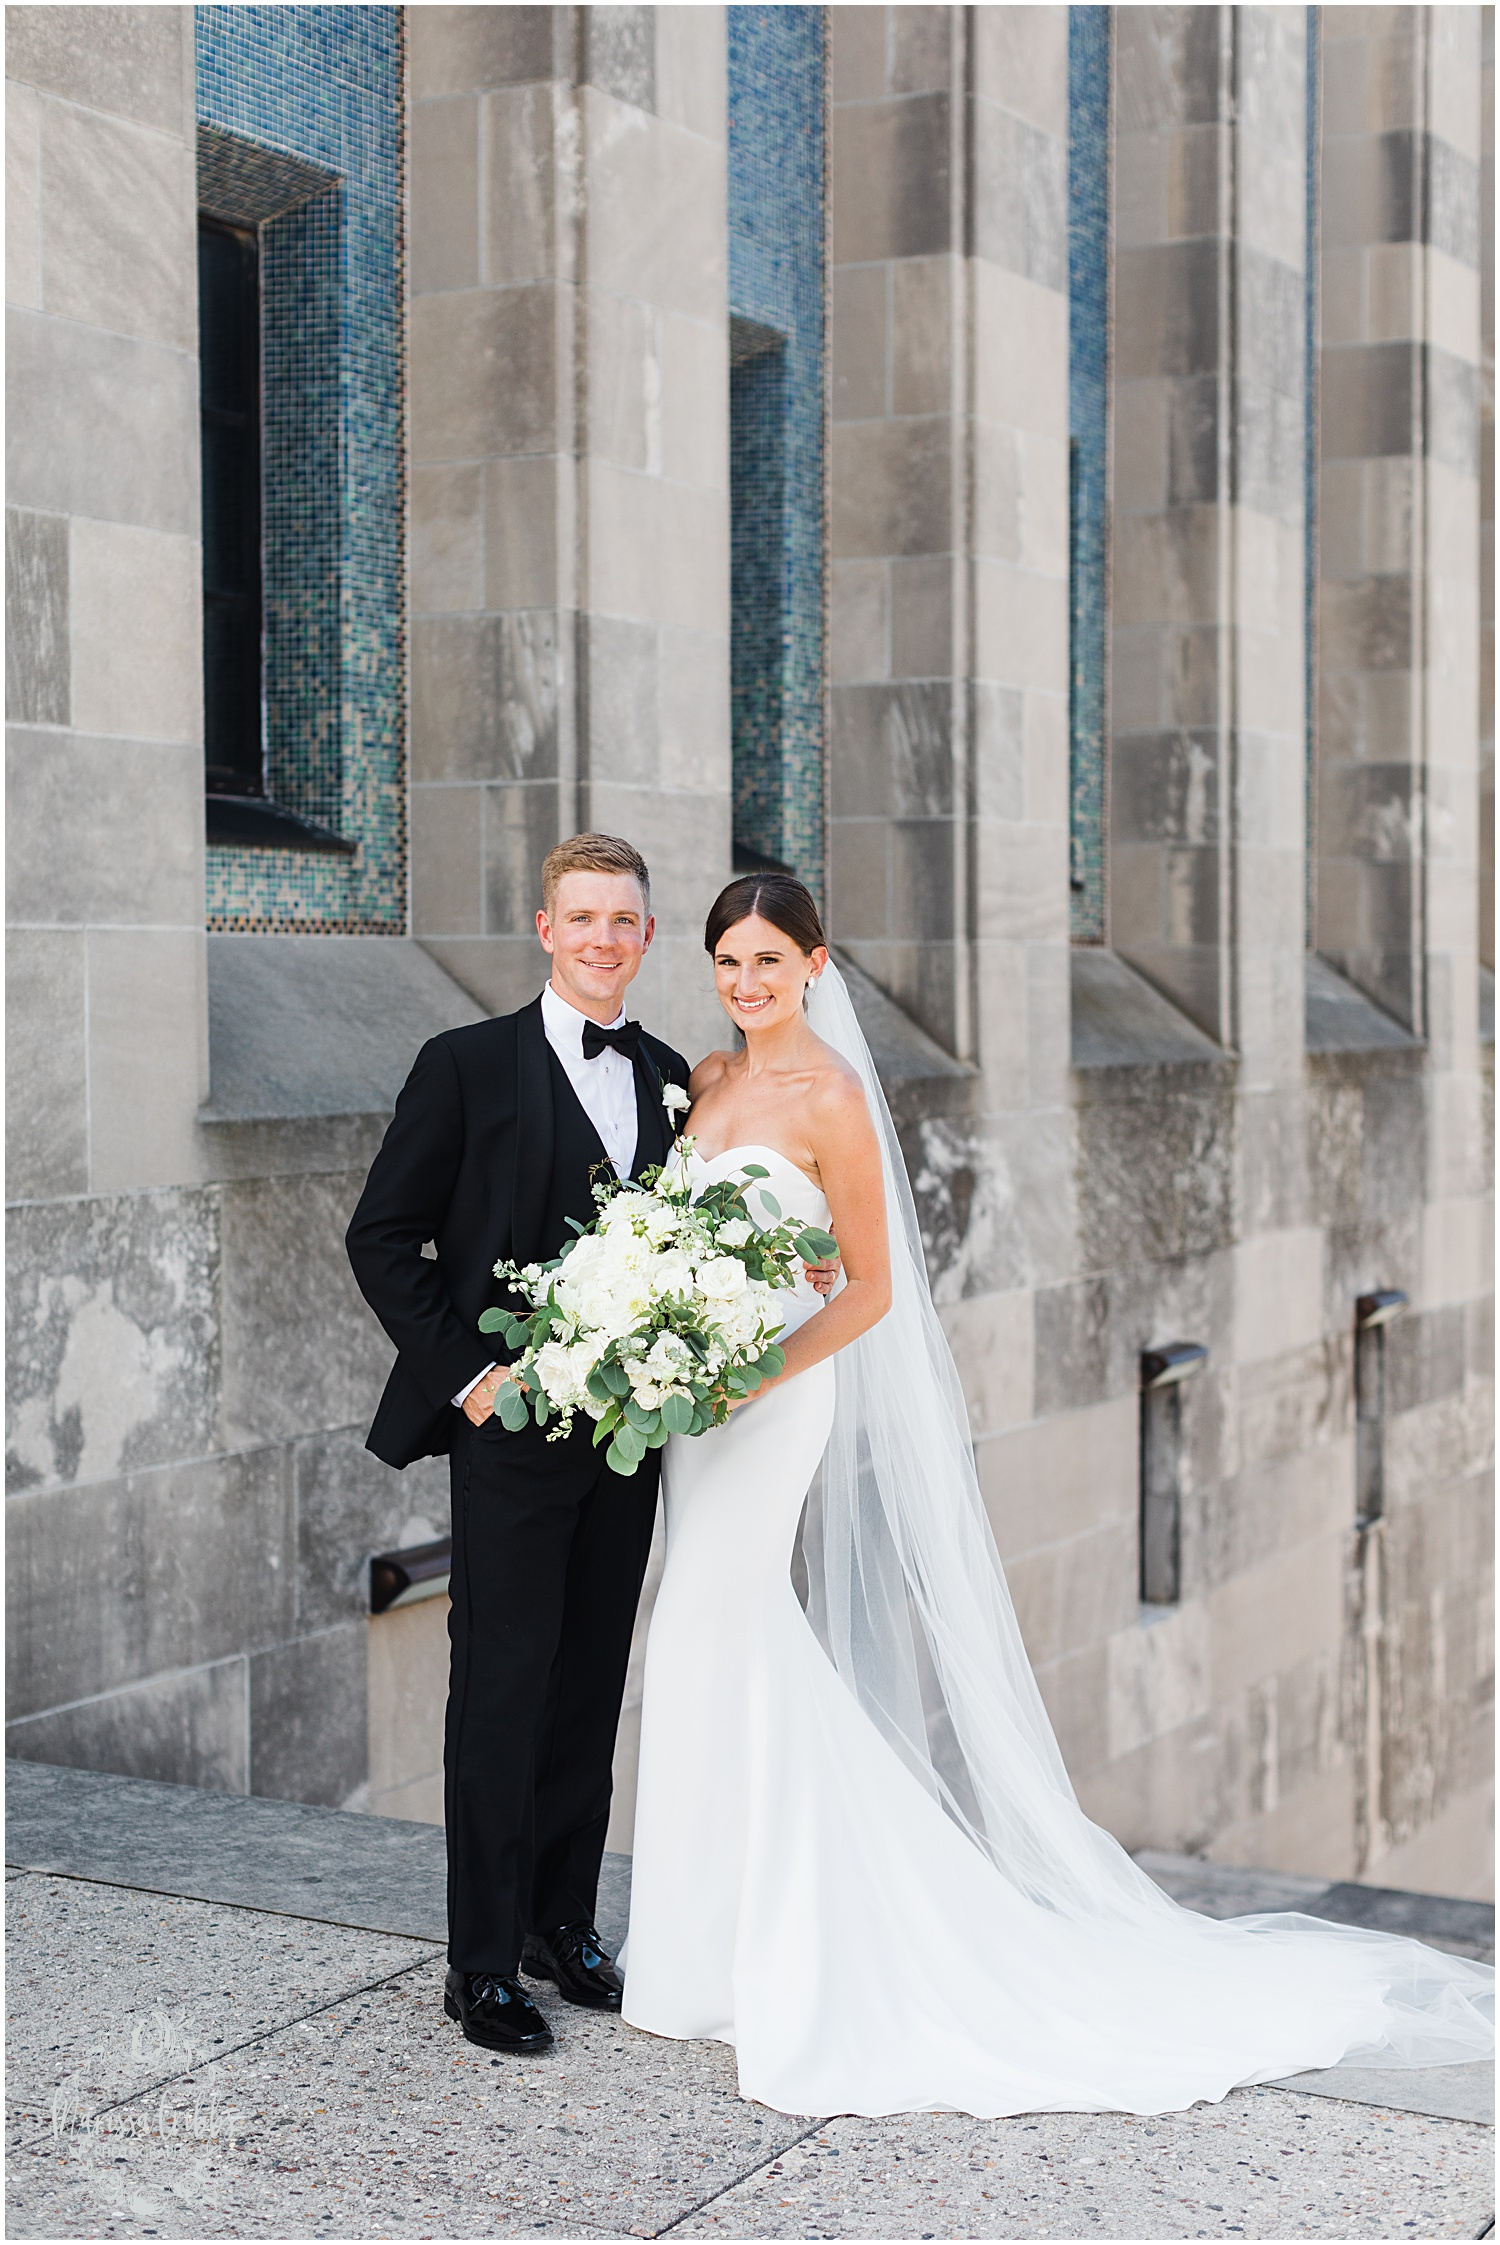 JOANNE & GEORGE MARRIED BLOG | MARISSA CRIBBS PHOTOGRAPHY | THE ABBOTT | KANSAS CITY WEDDING PHOTOS_9051.jpg